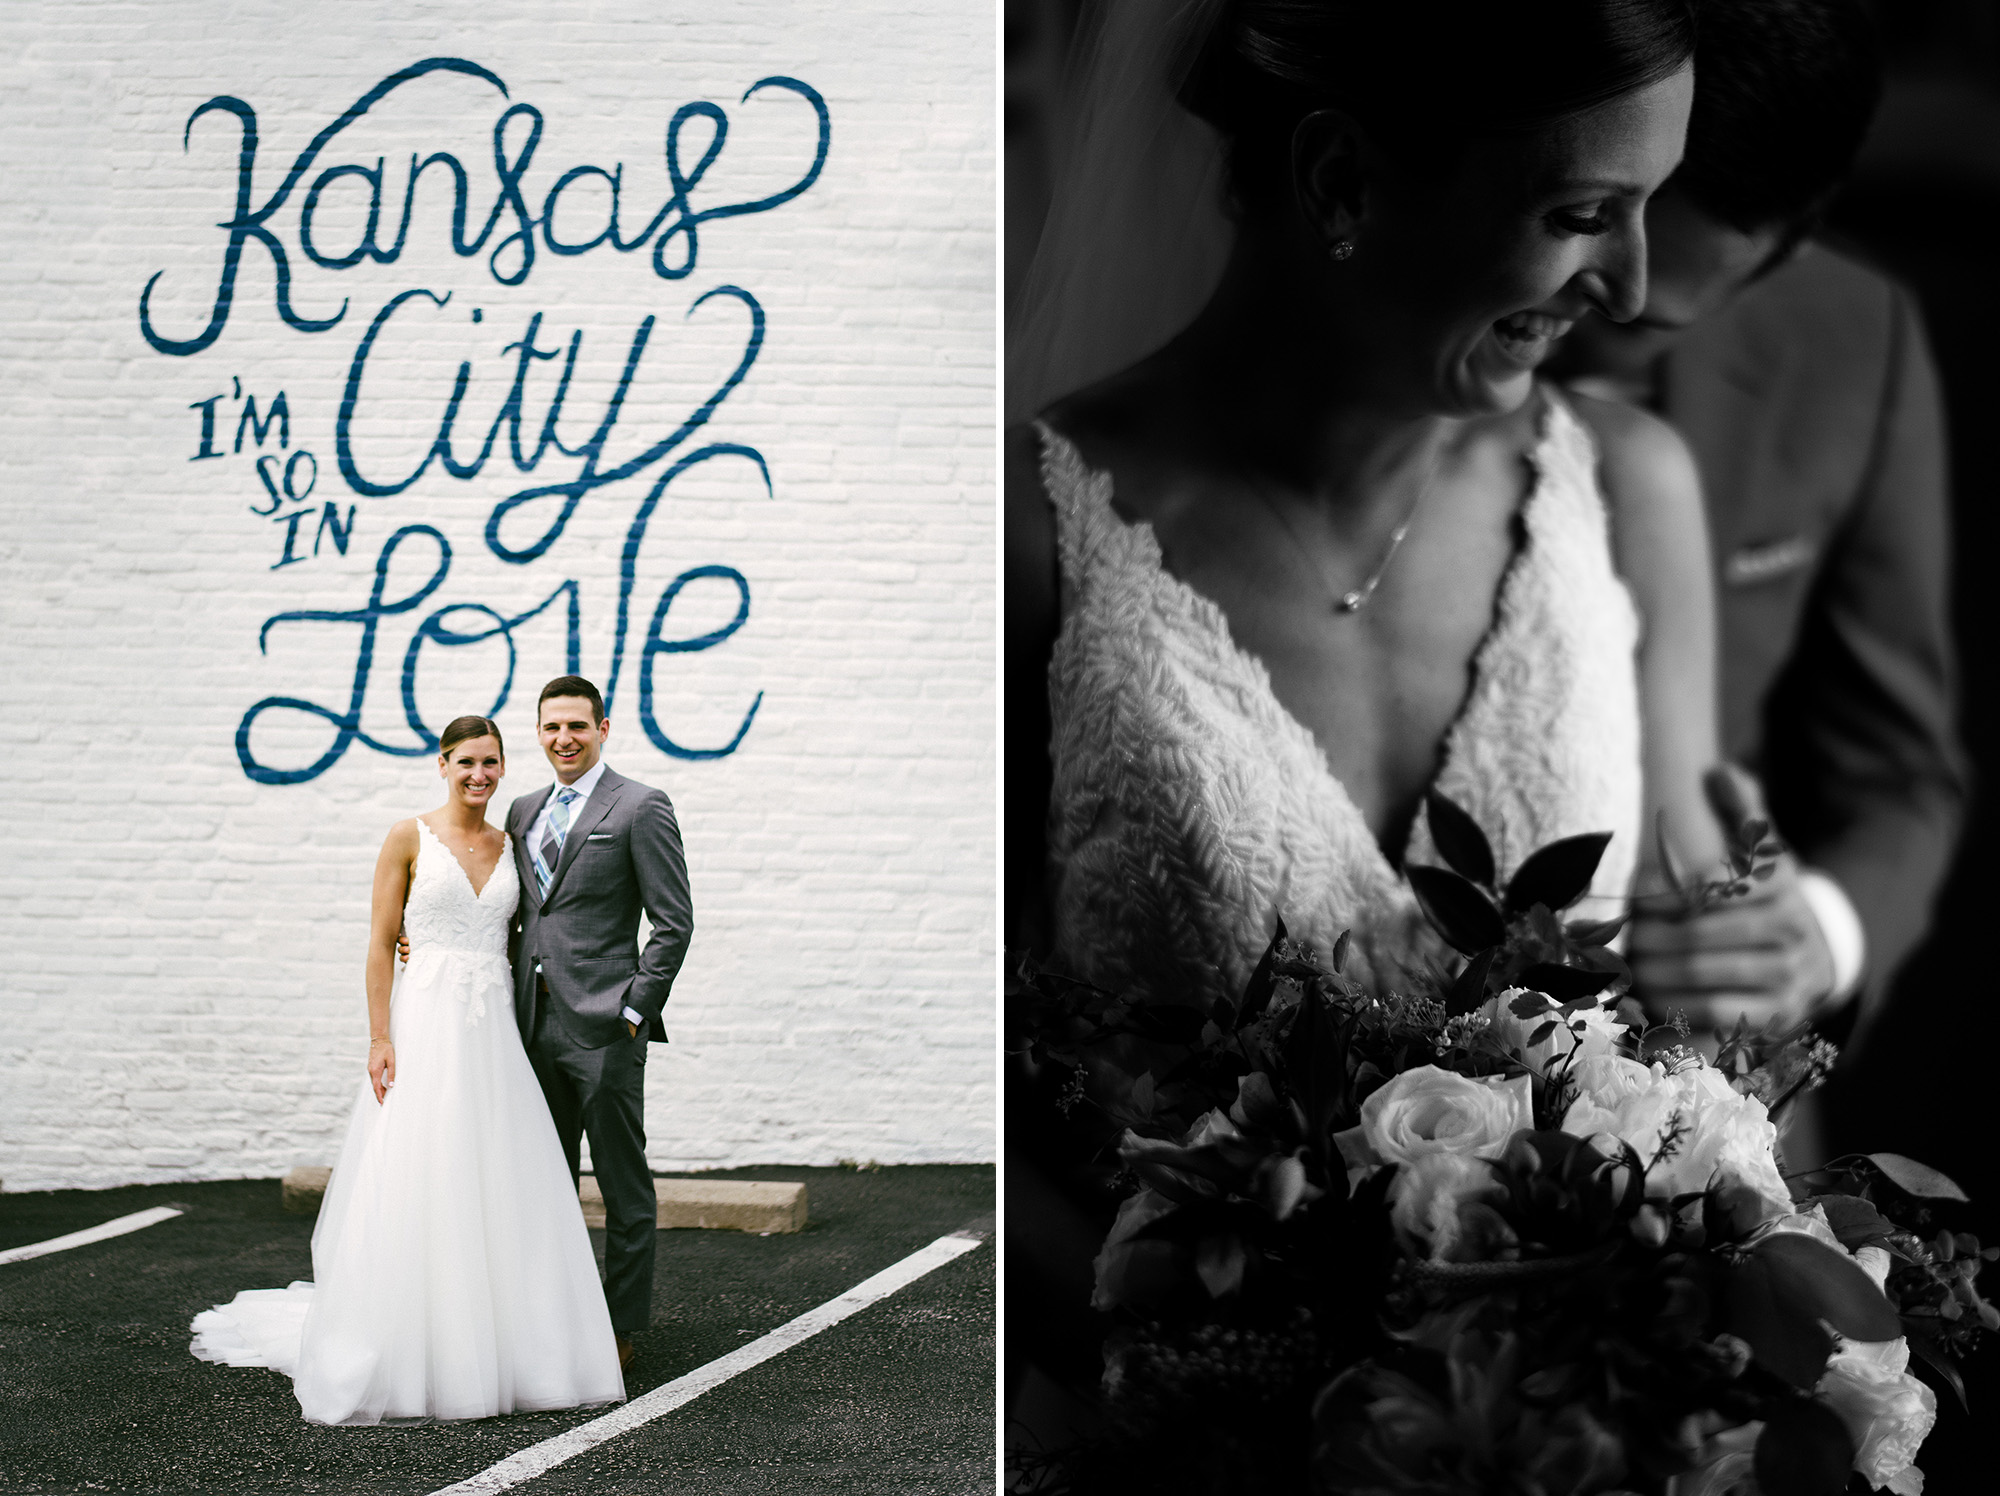 Kansas City Wedding Photographer Rusty Wright